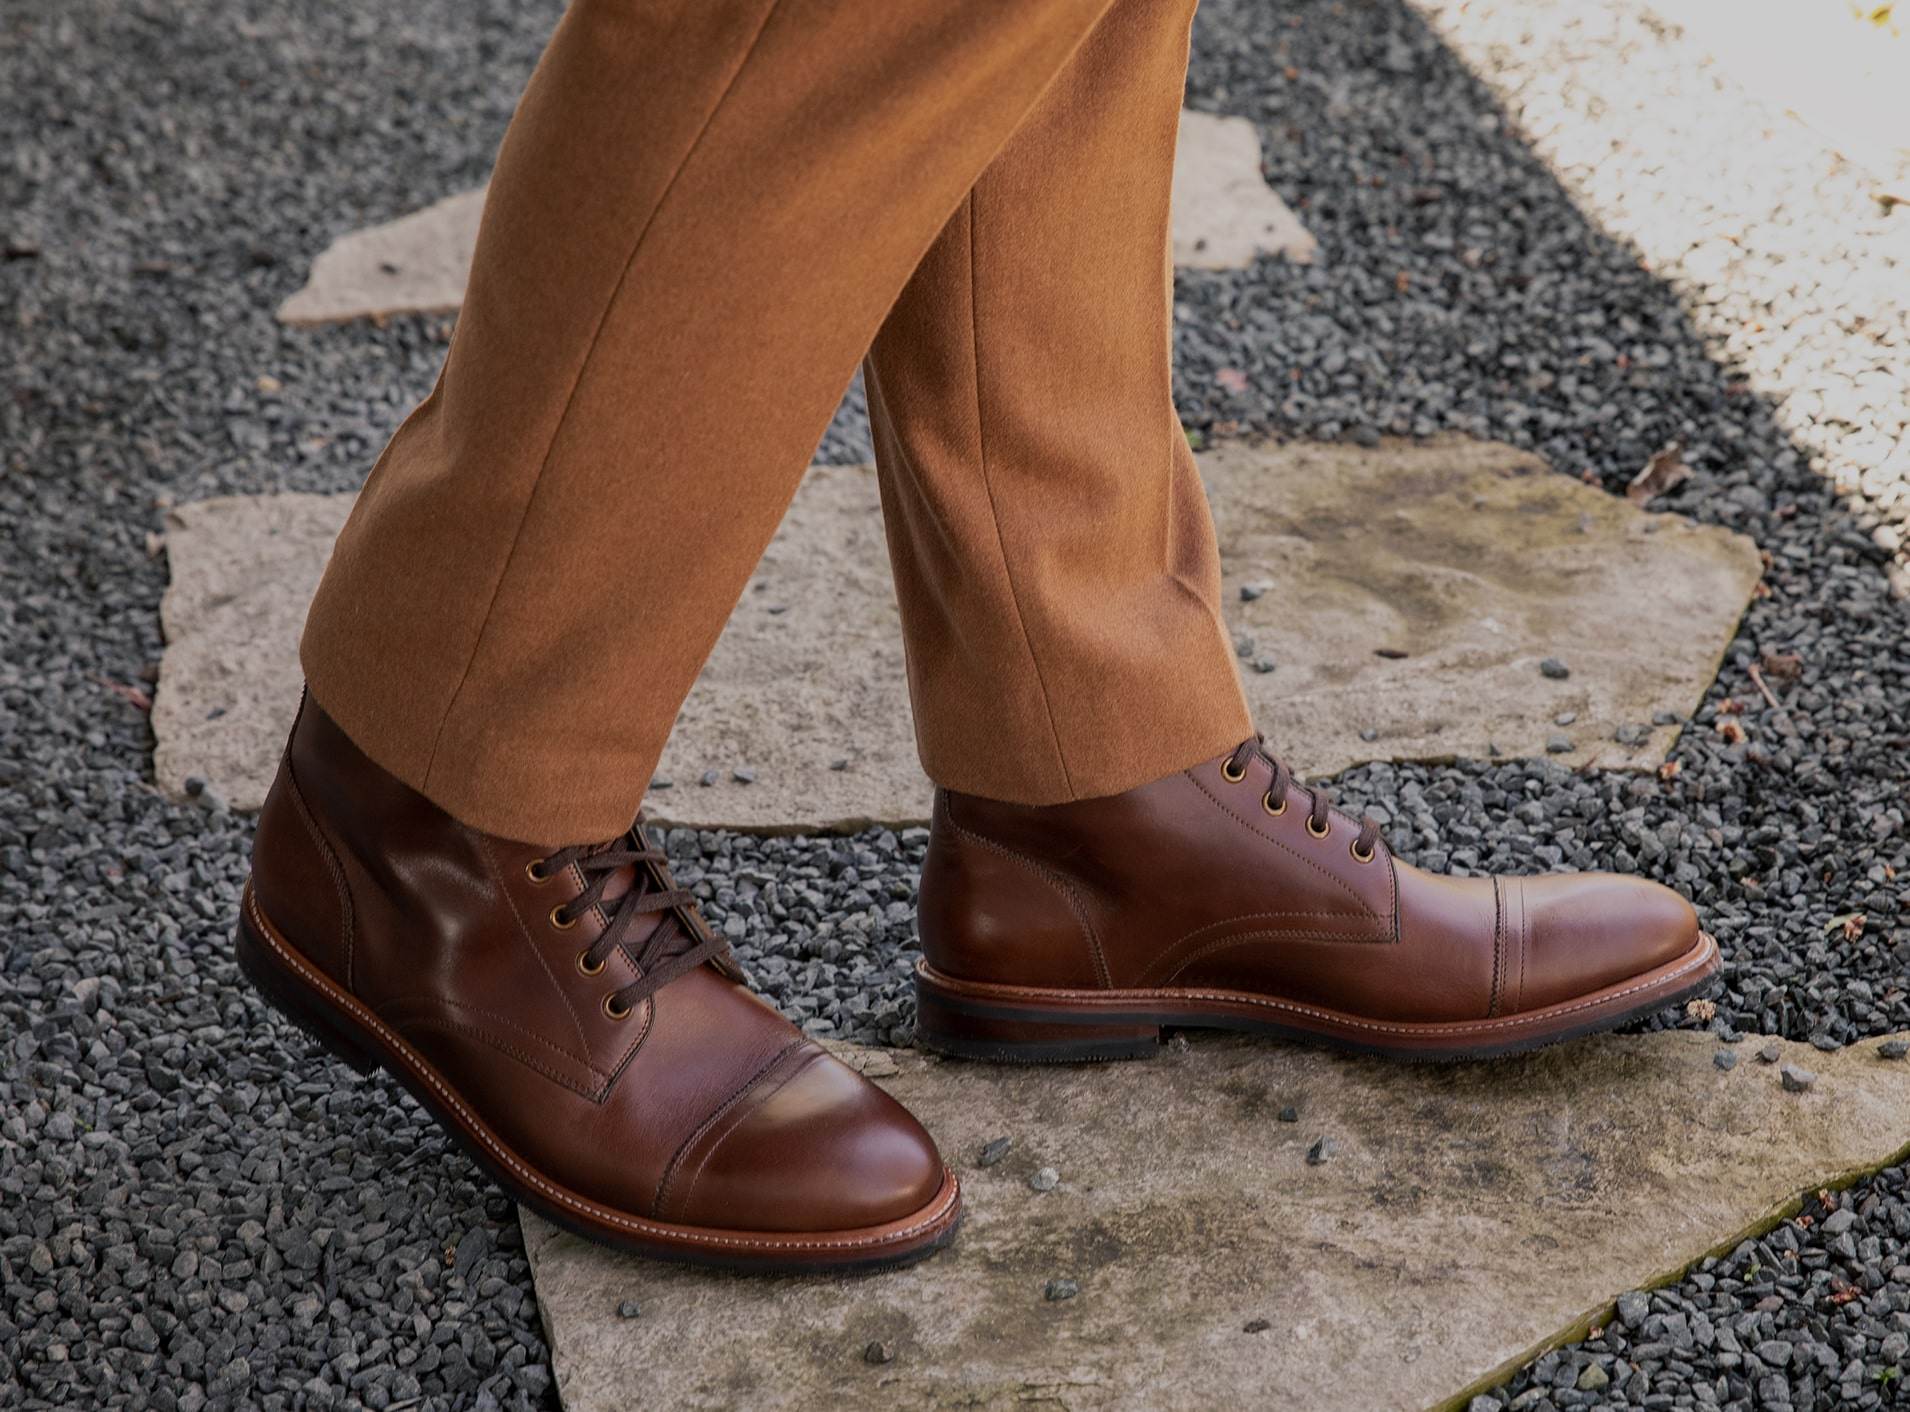 The featured shoe in this image is the Postino Cap Toe Oxford in Cognac. Click to learn more about each brand in the Weyco portfolio.